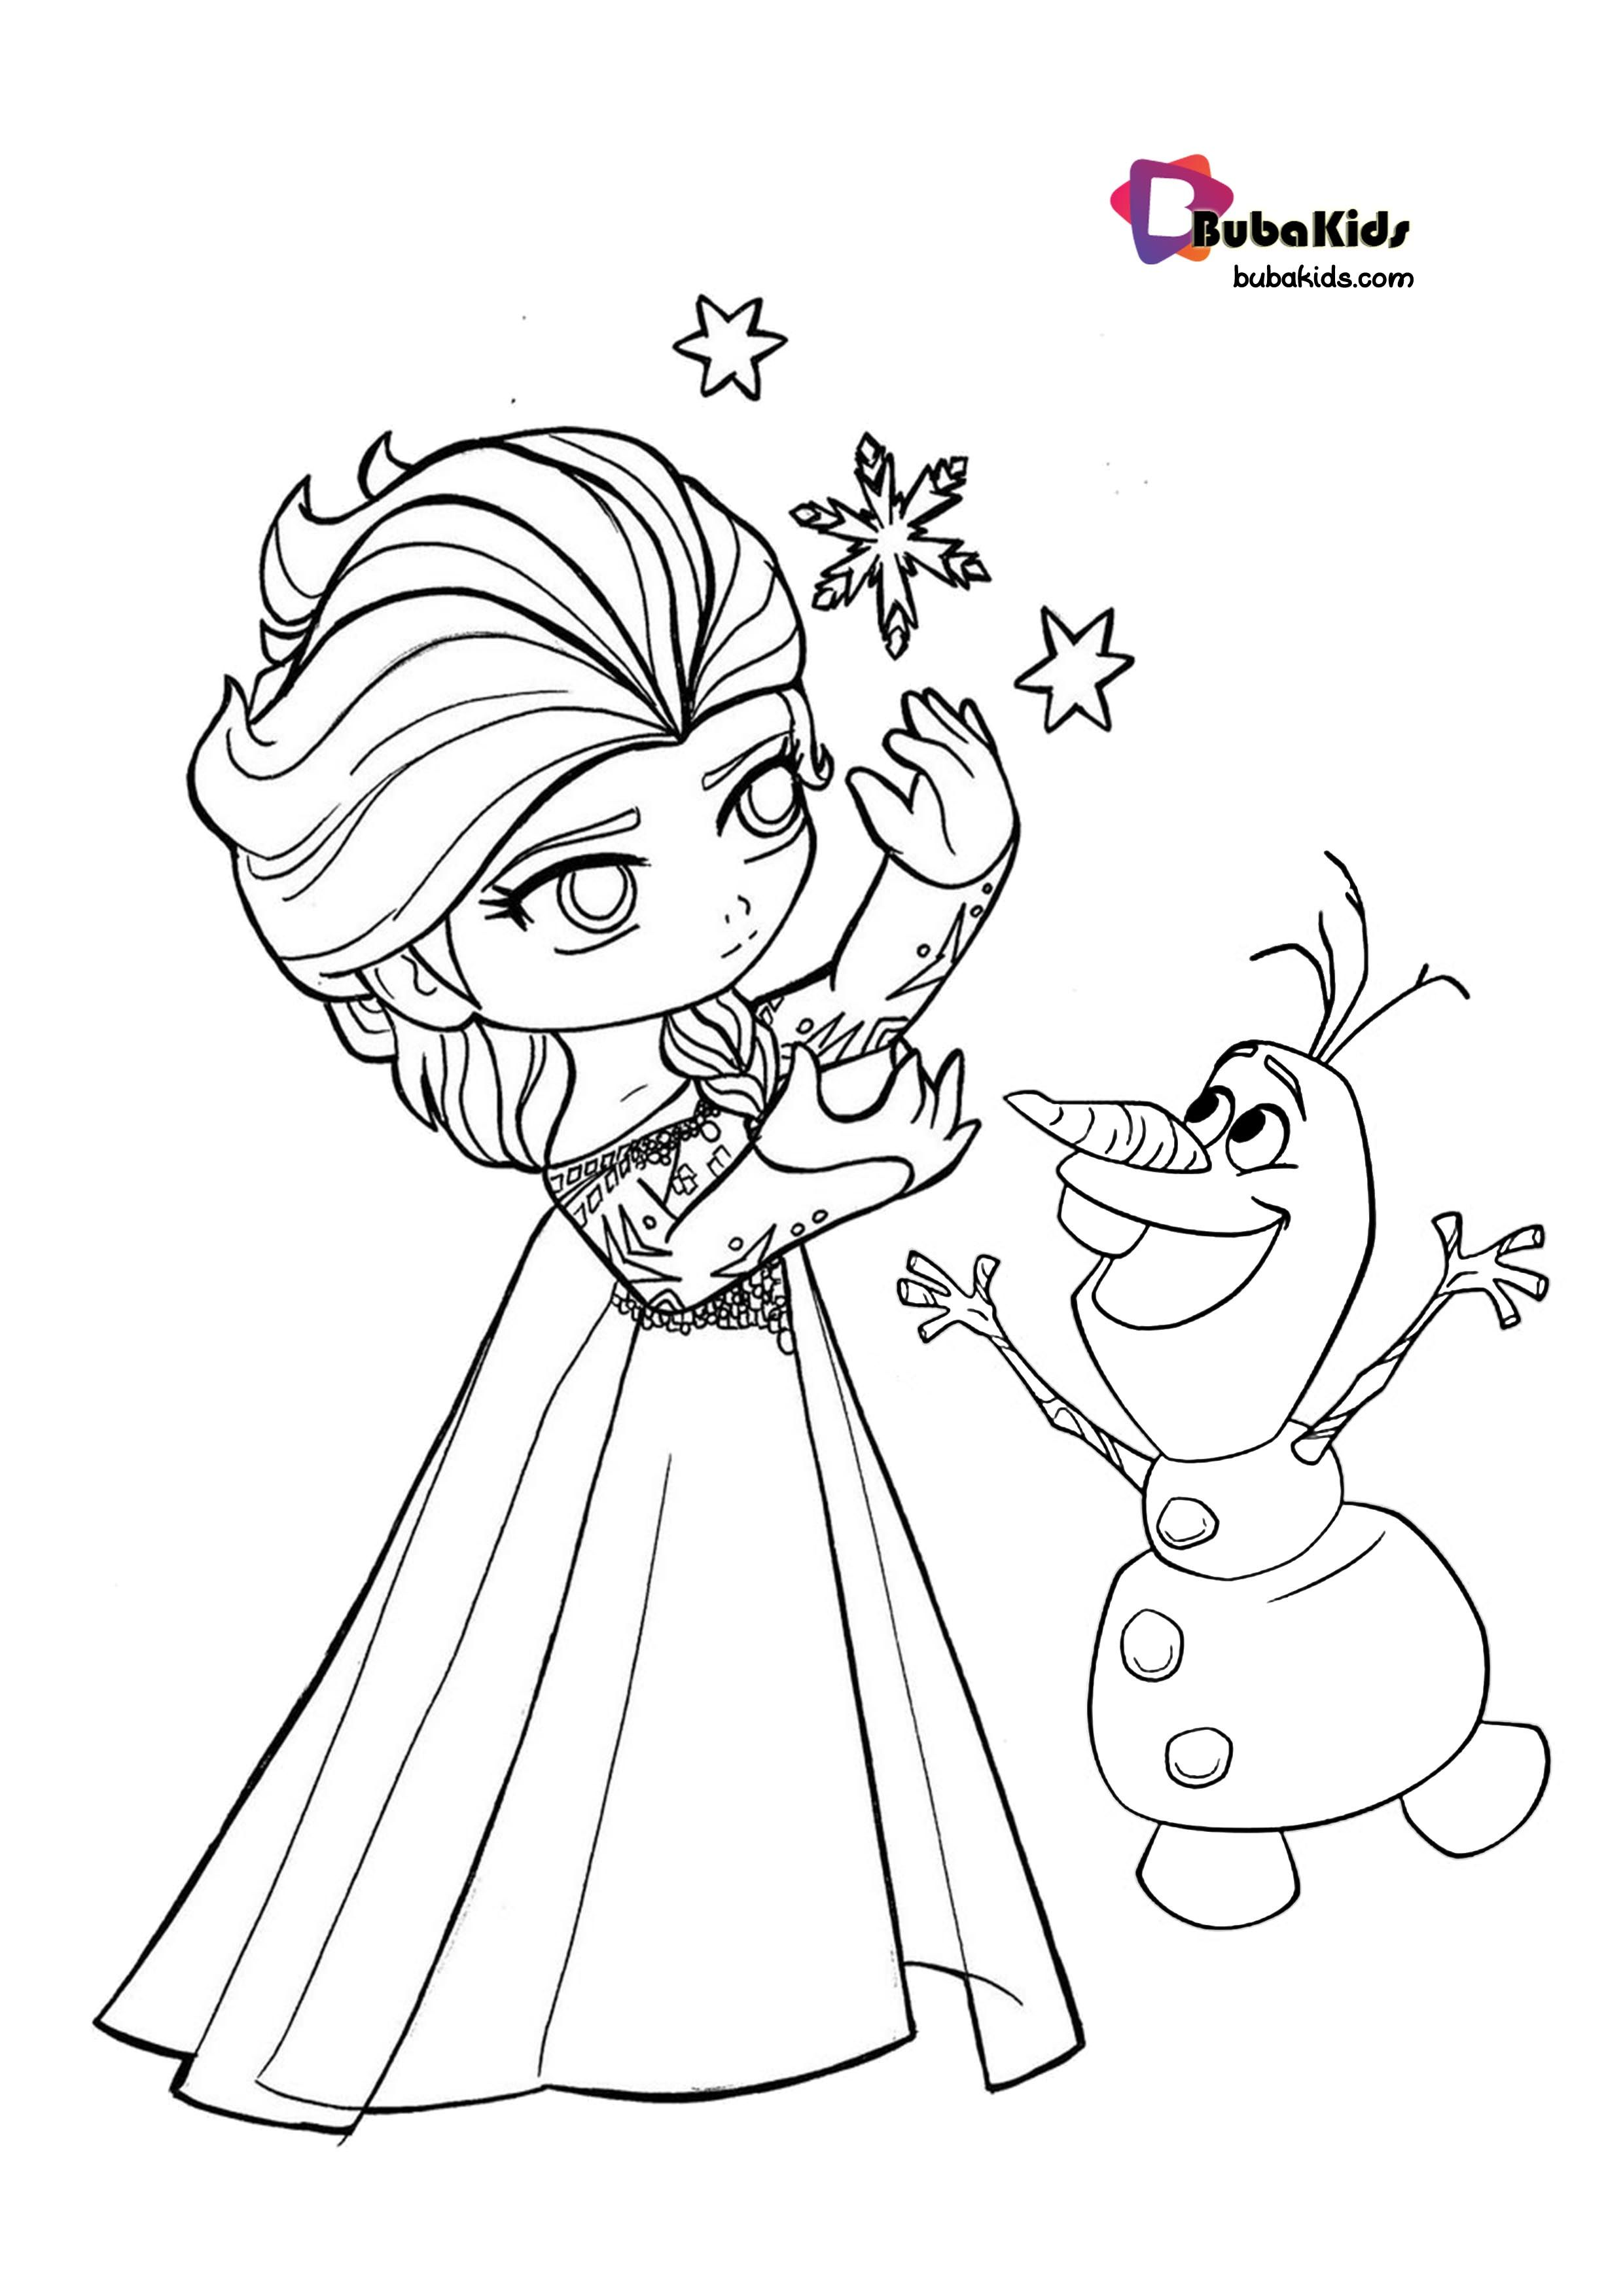 Bubakids Little Princess Anna Coloring Page Anna Coloringpage Disneyprincess Littleprincess A Cartoon Coloring Pages Coloring Pages Printable Coloring Book